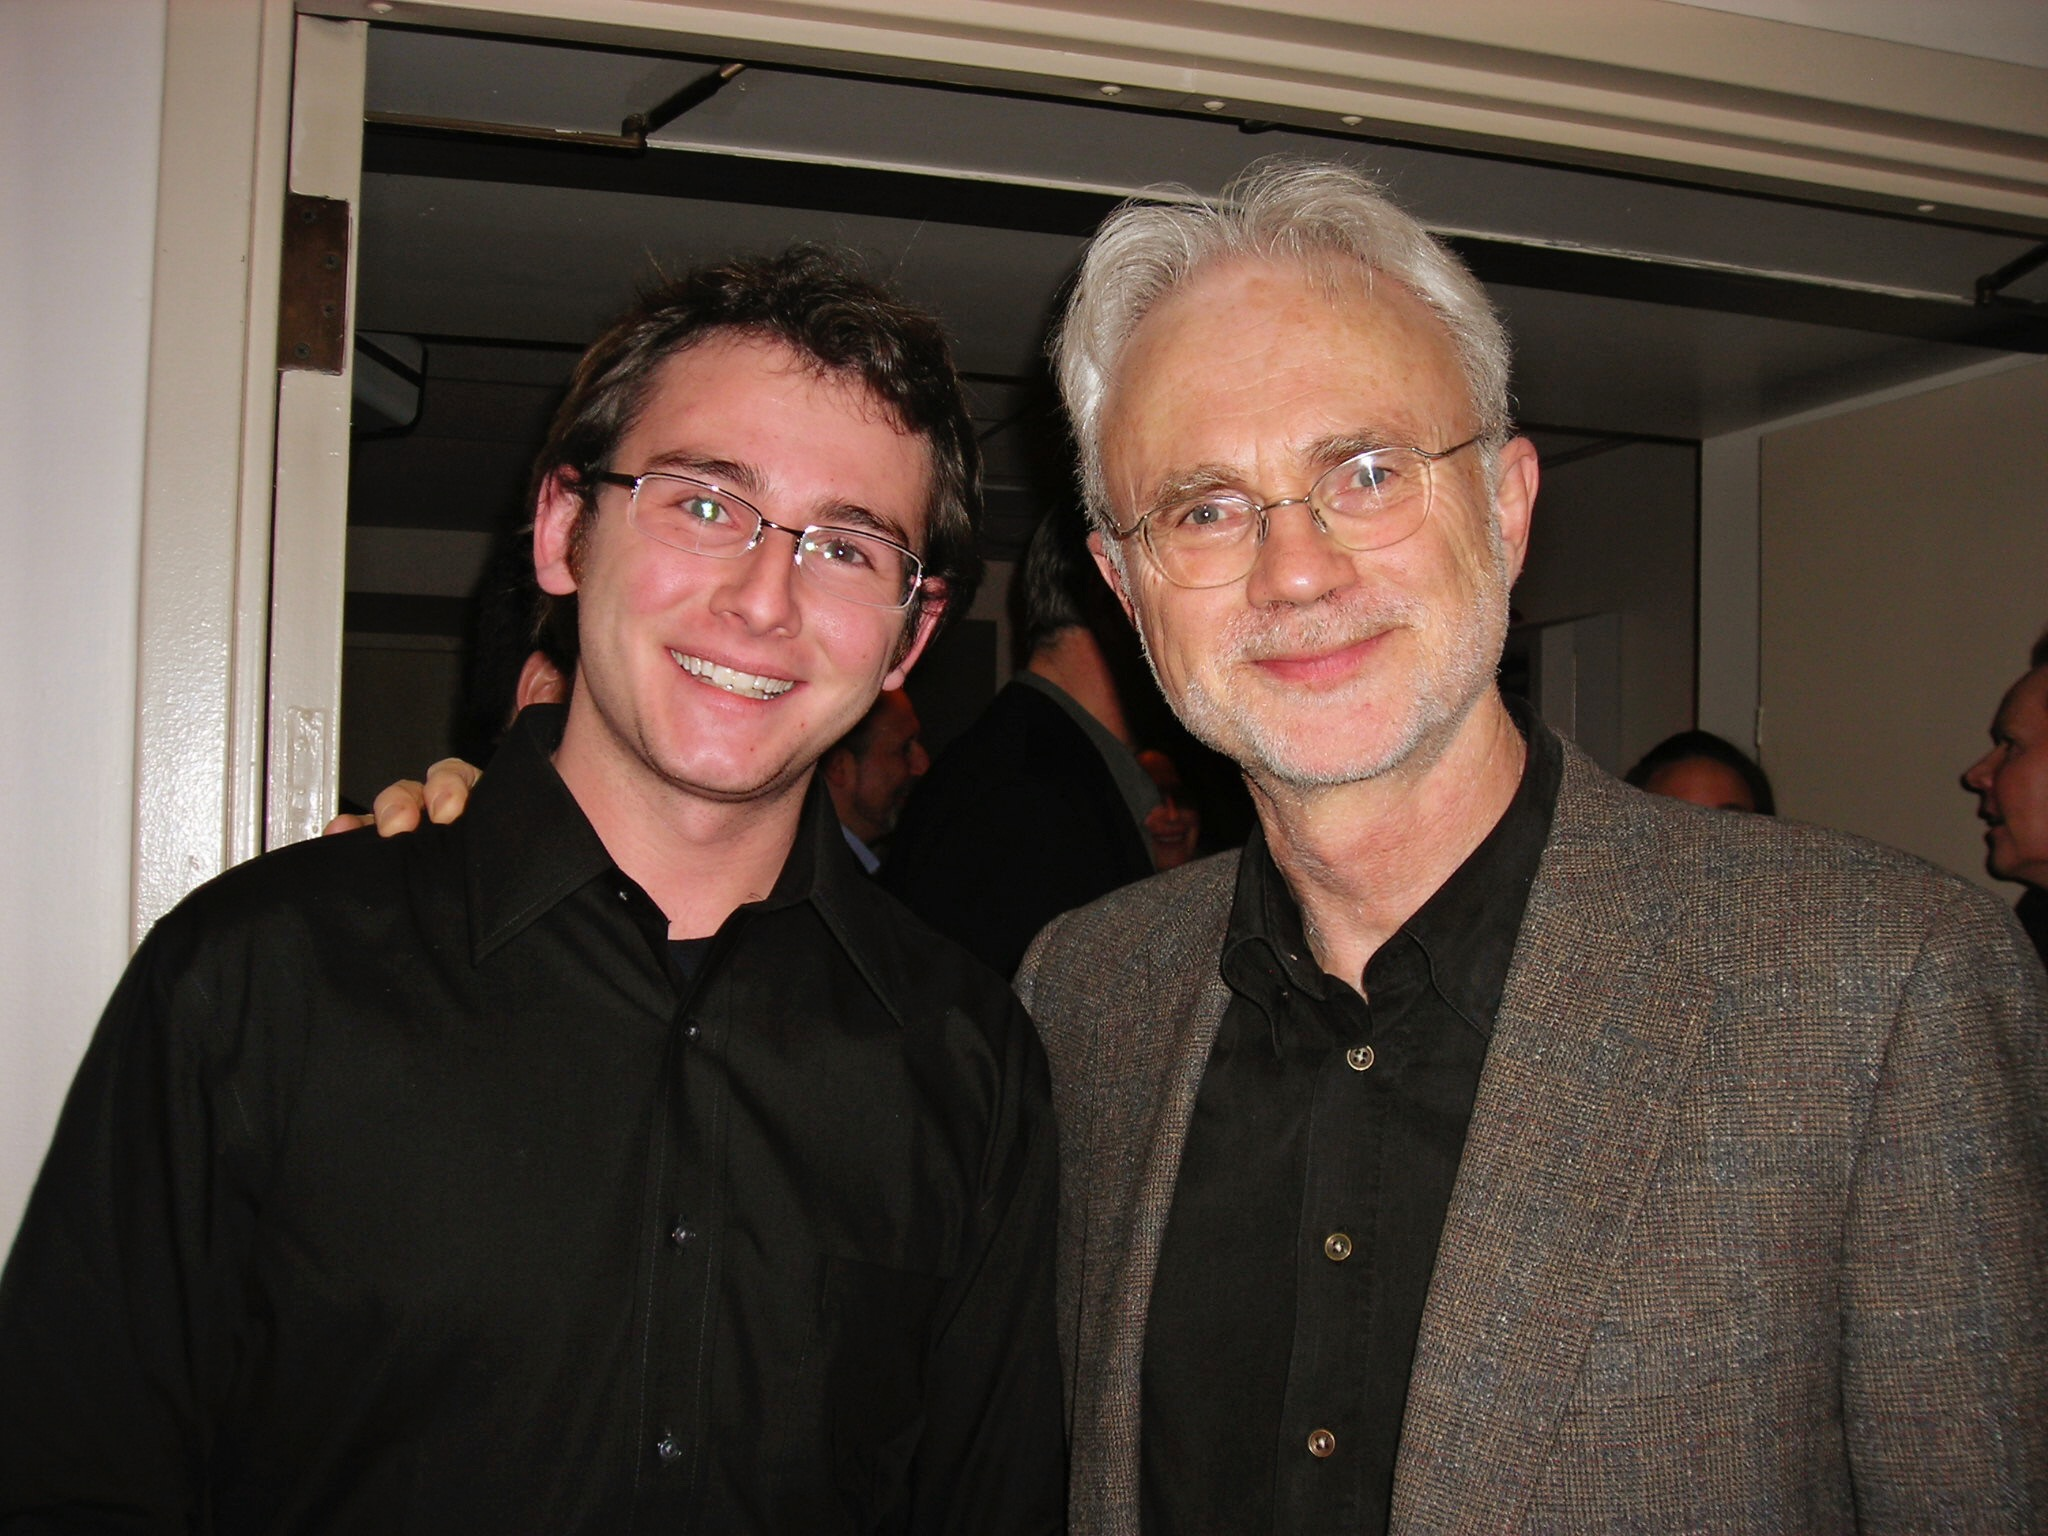 Michael (left) with composer John Adams (right).